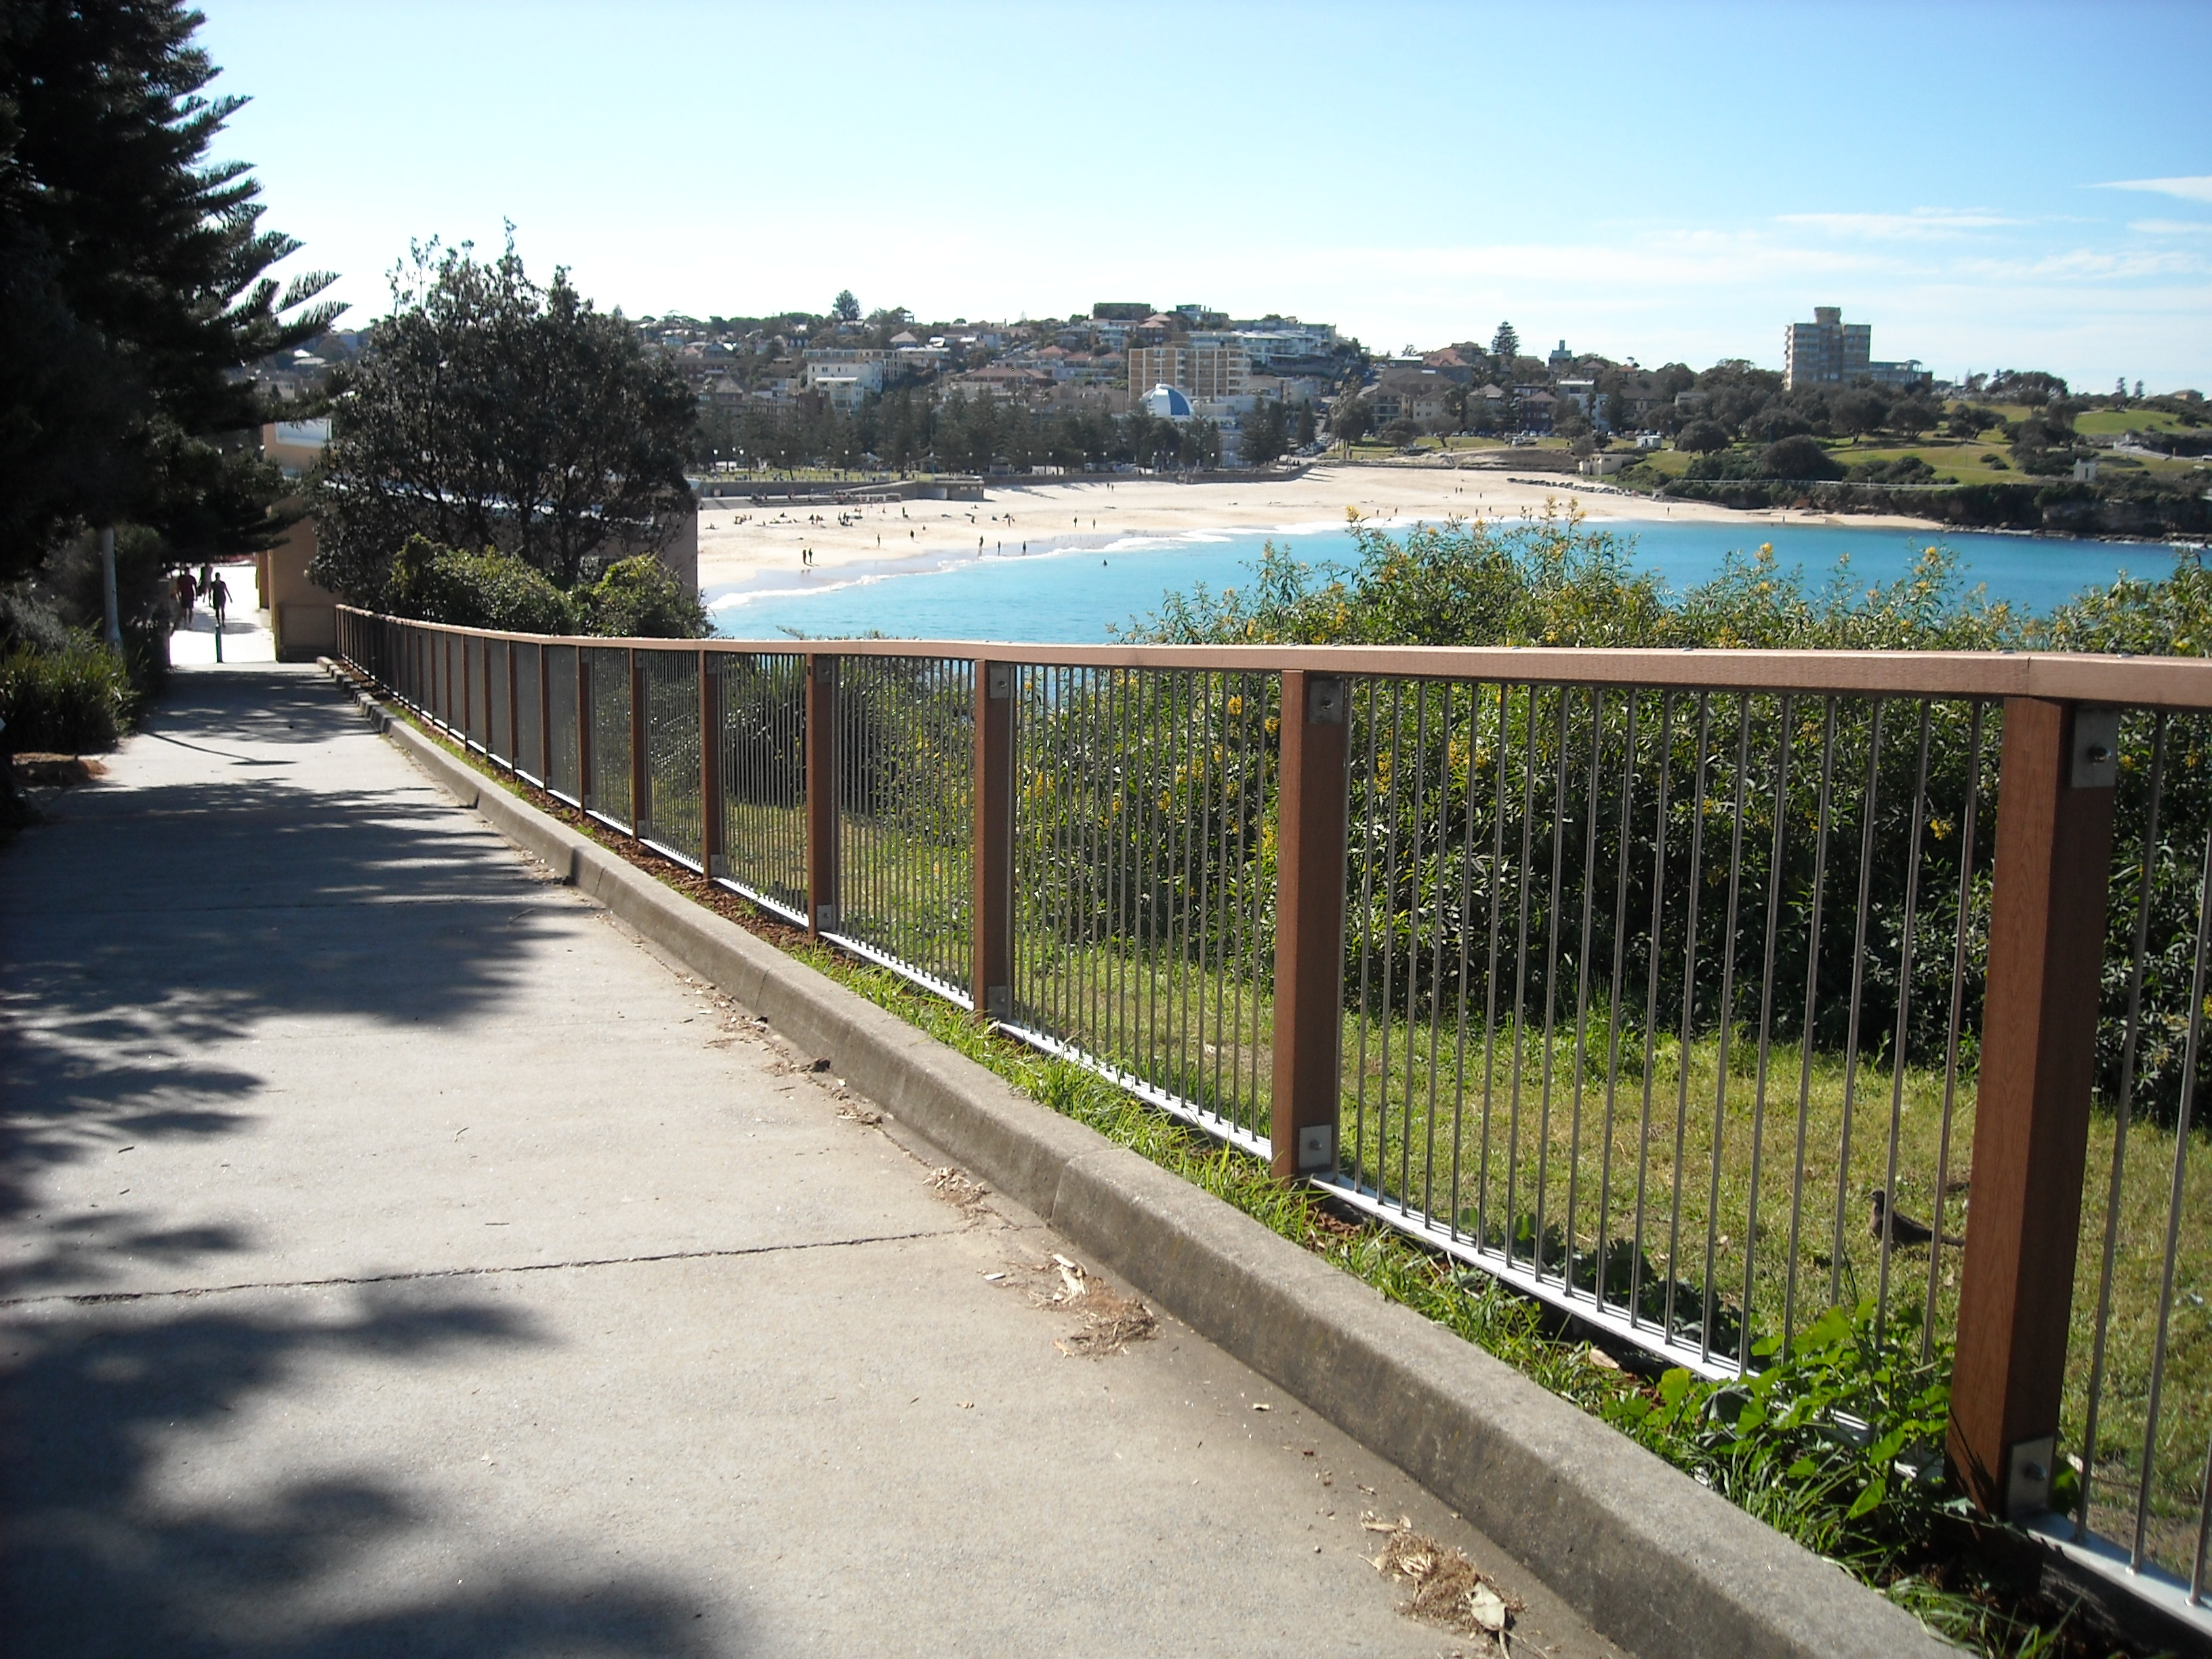 RANDWICK CITY COUNCIL Coogee Beach South End RPW Post & Rail with Stainless Steel Panels